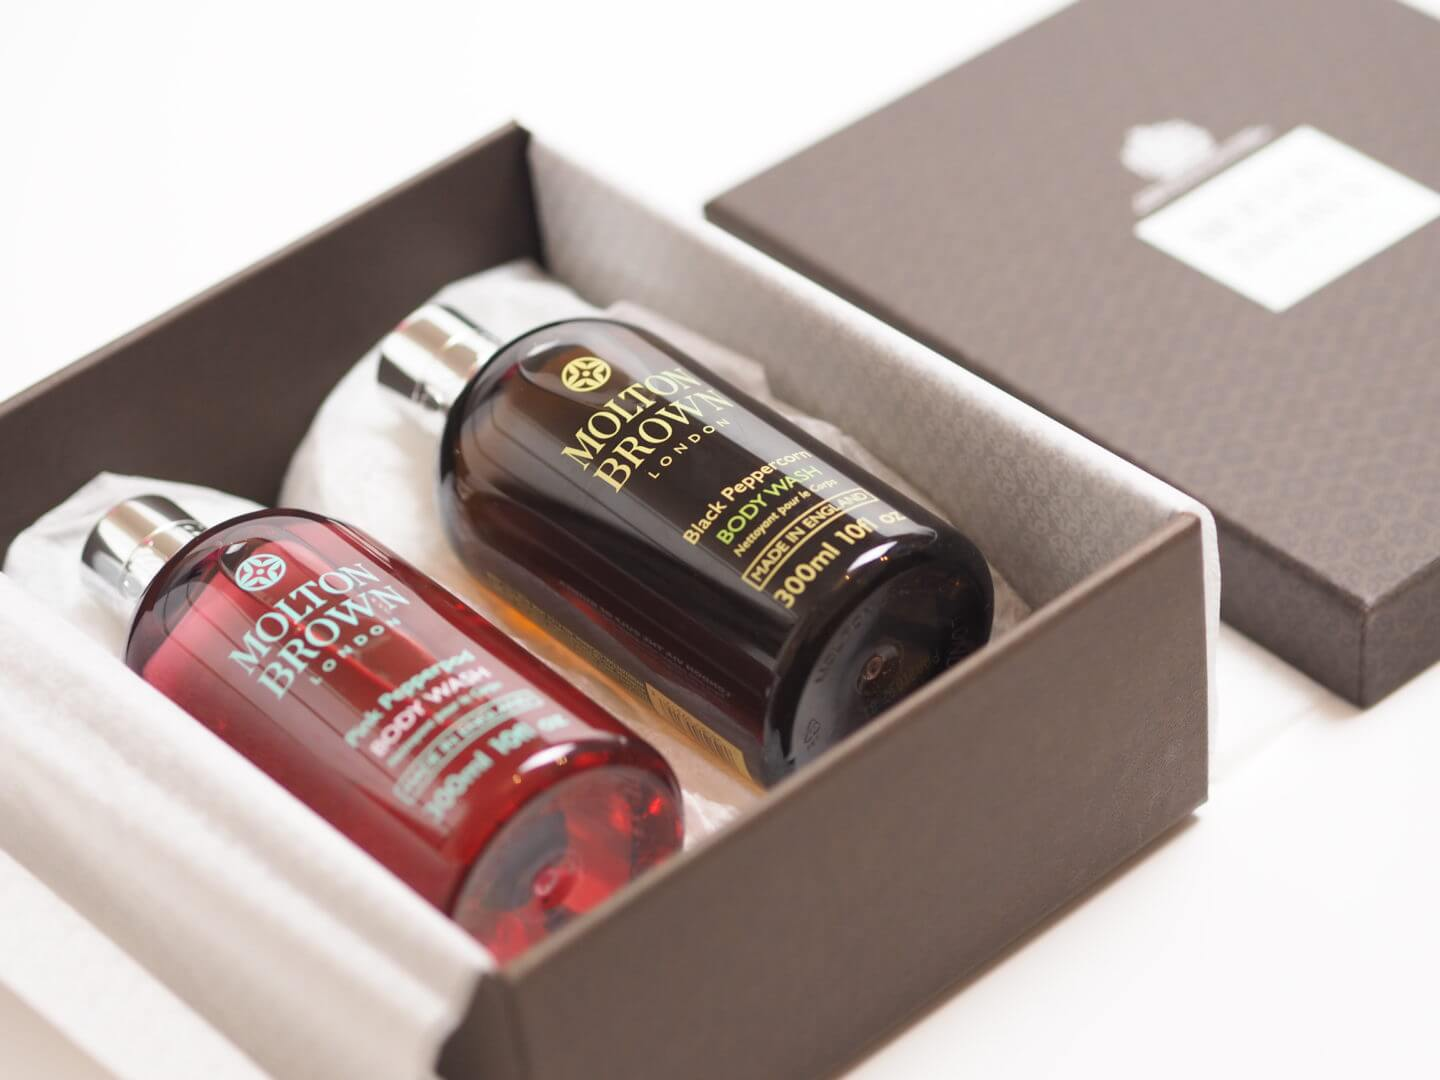 Molton Brown Pink Peppercorn and Black Peppercorn - tips to relax when planning a wedding